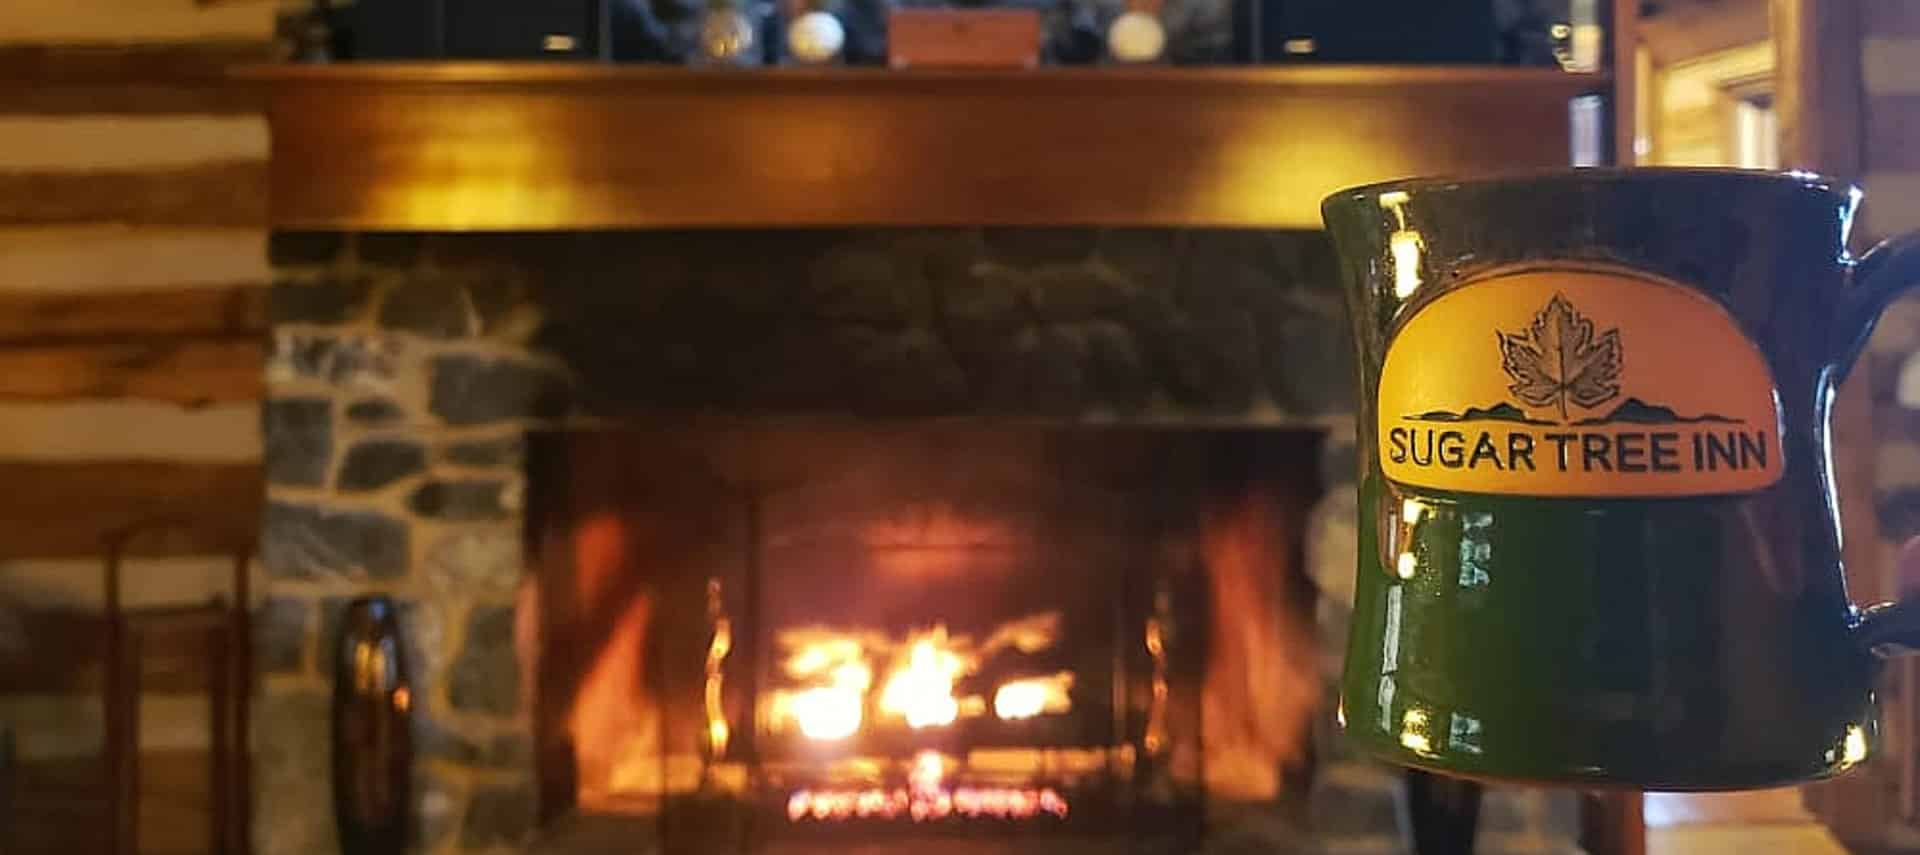 A roaring fire in a stone fireplace with a dark green mug with text Sugar Tree Inn in the foreground.